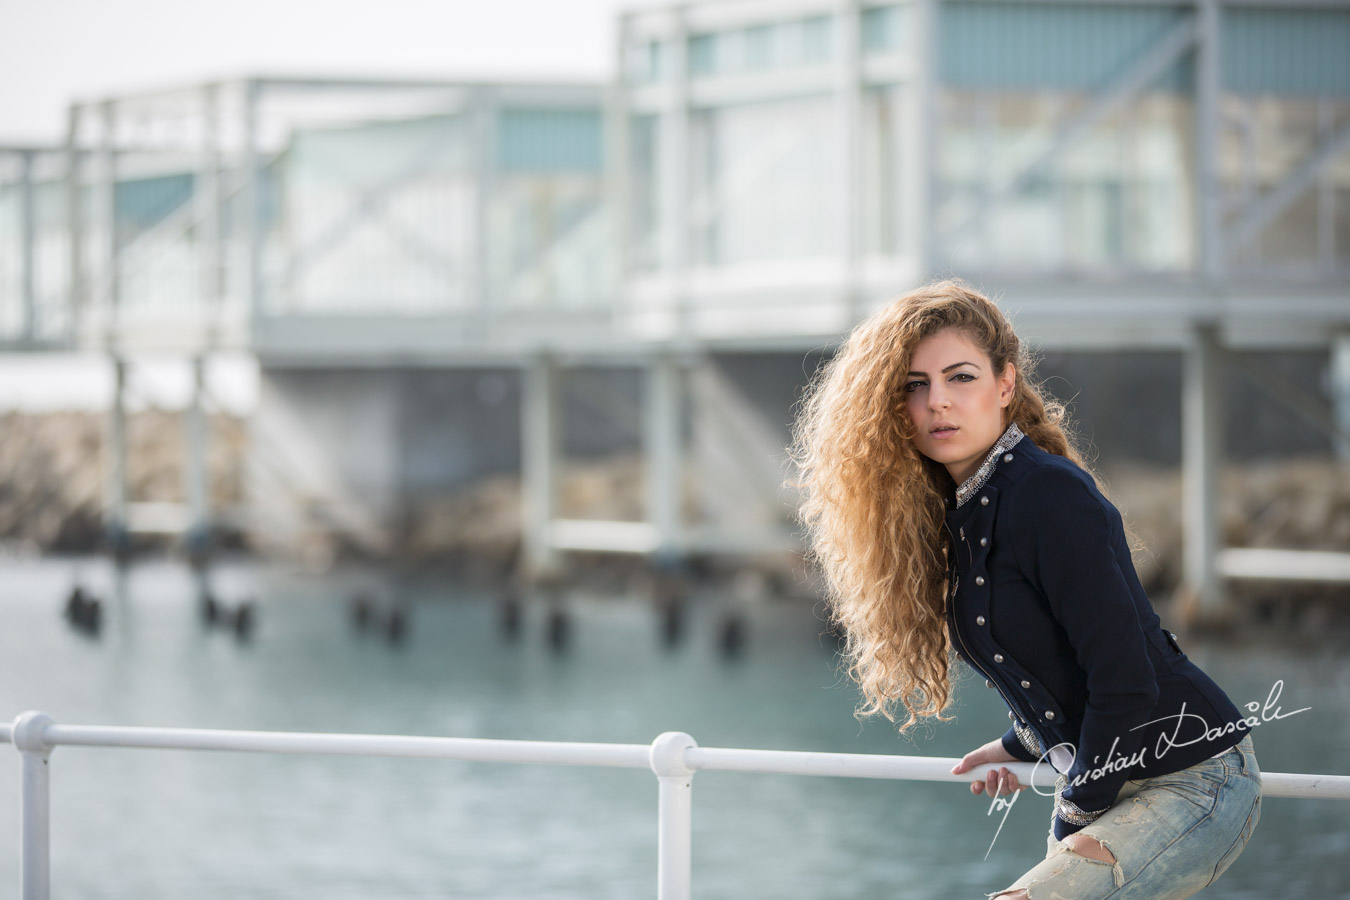 Themis posing next to the new buildings of the Old Port Limassol. Photo by Cristian Dascalu